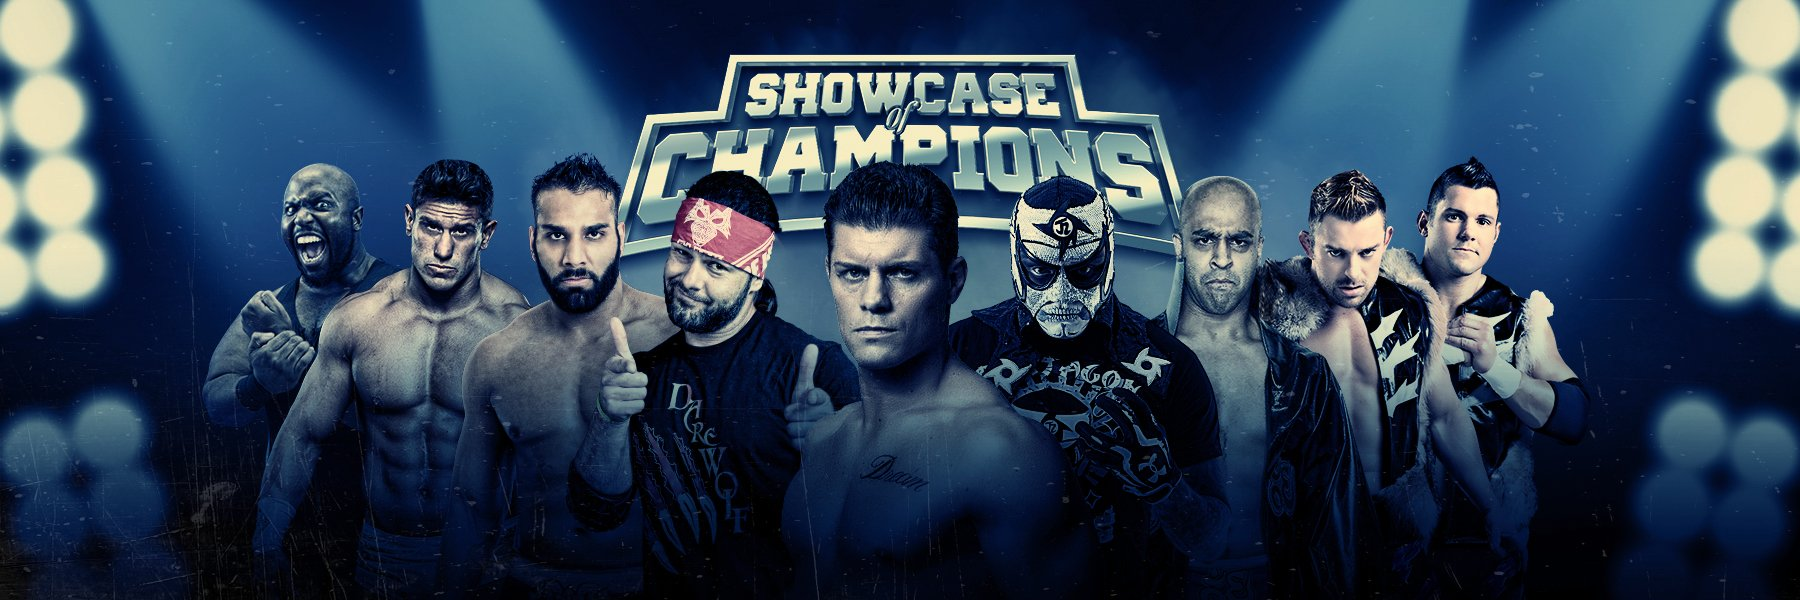 Showcase of Champions/WrestleCade Weekend